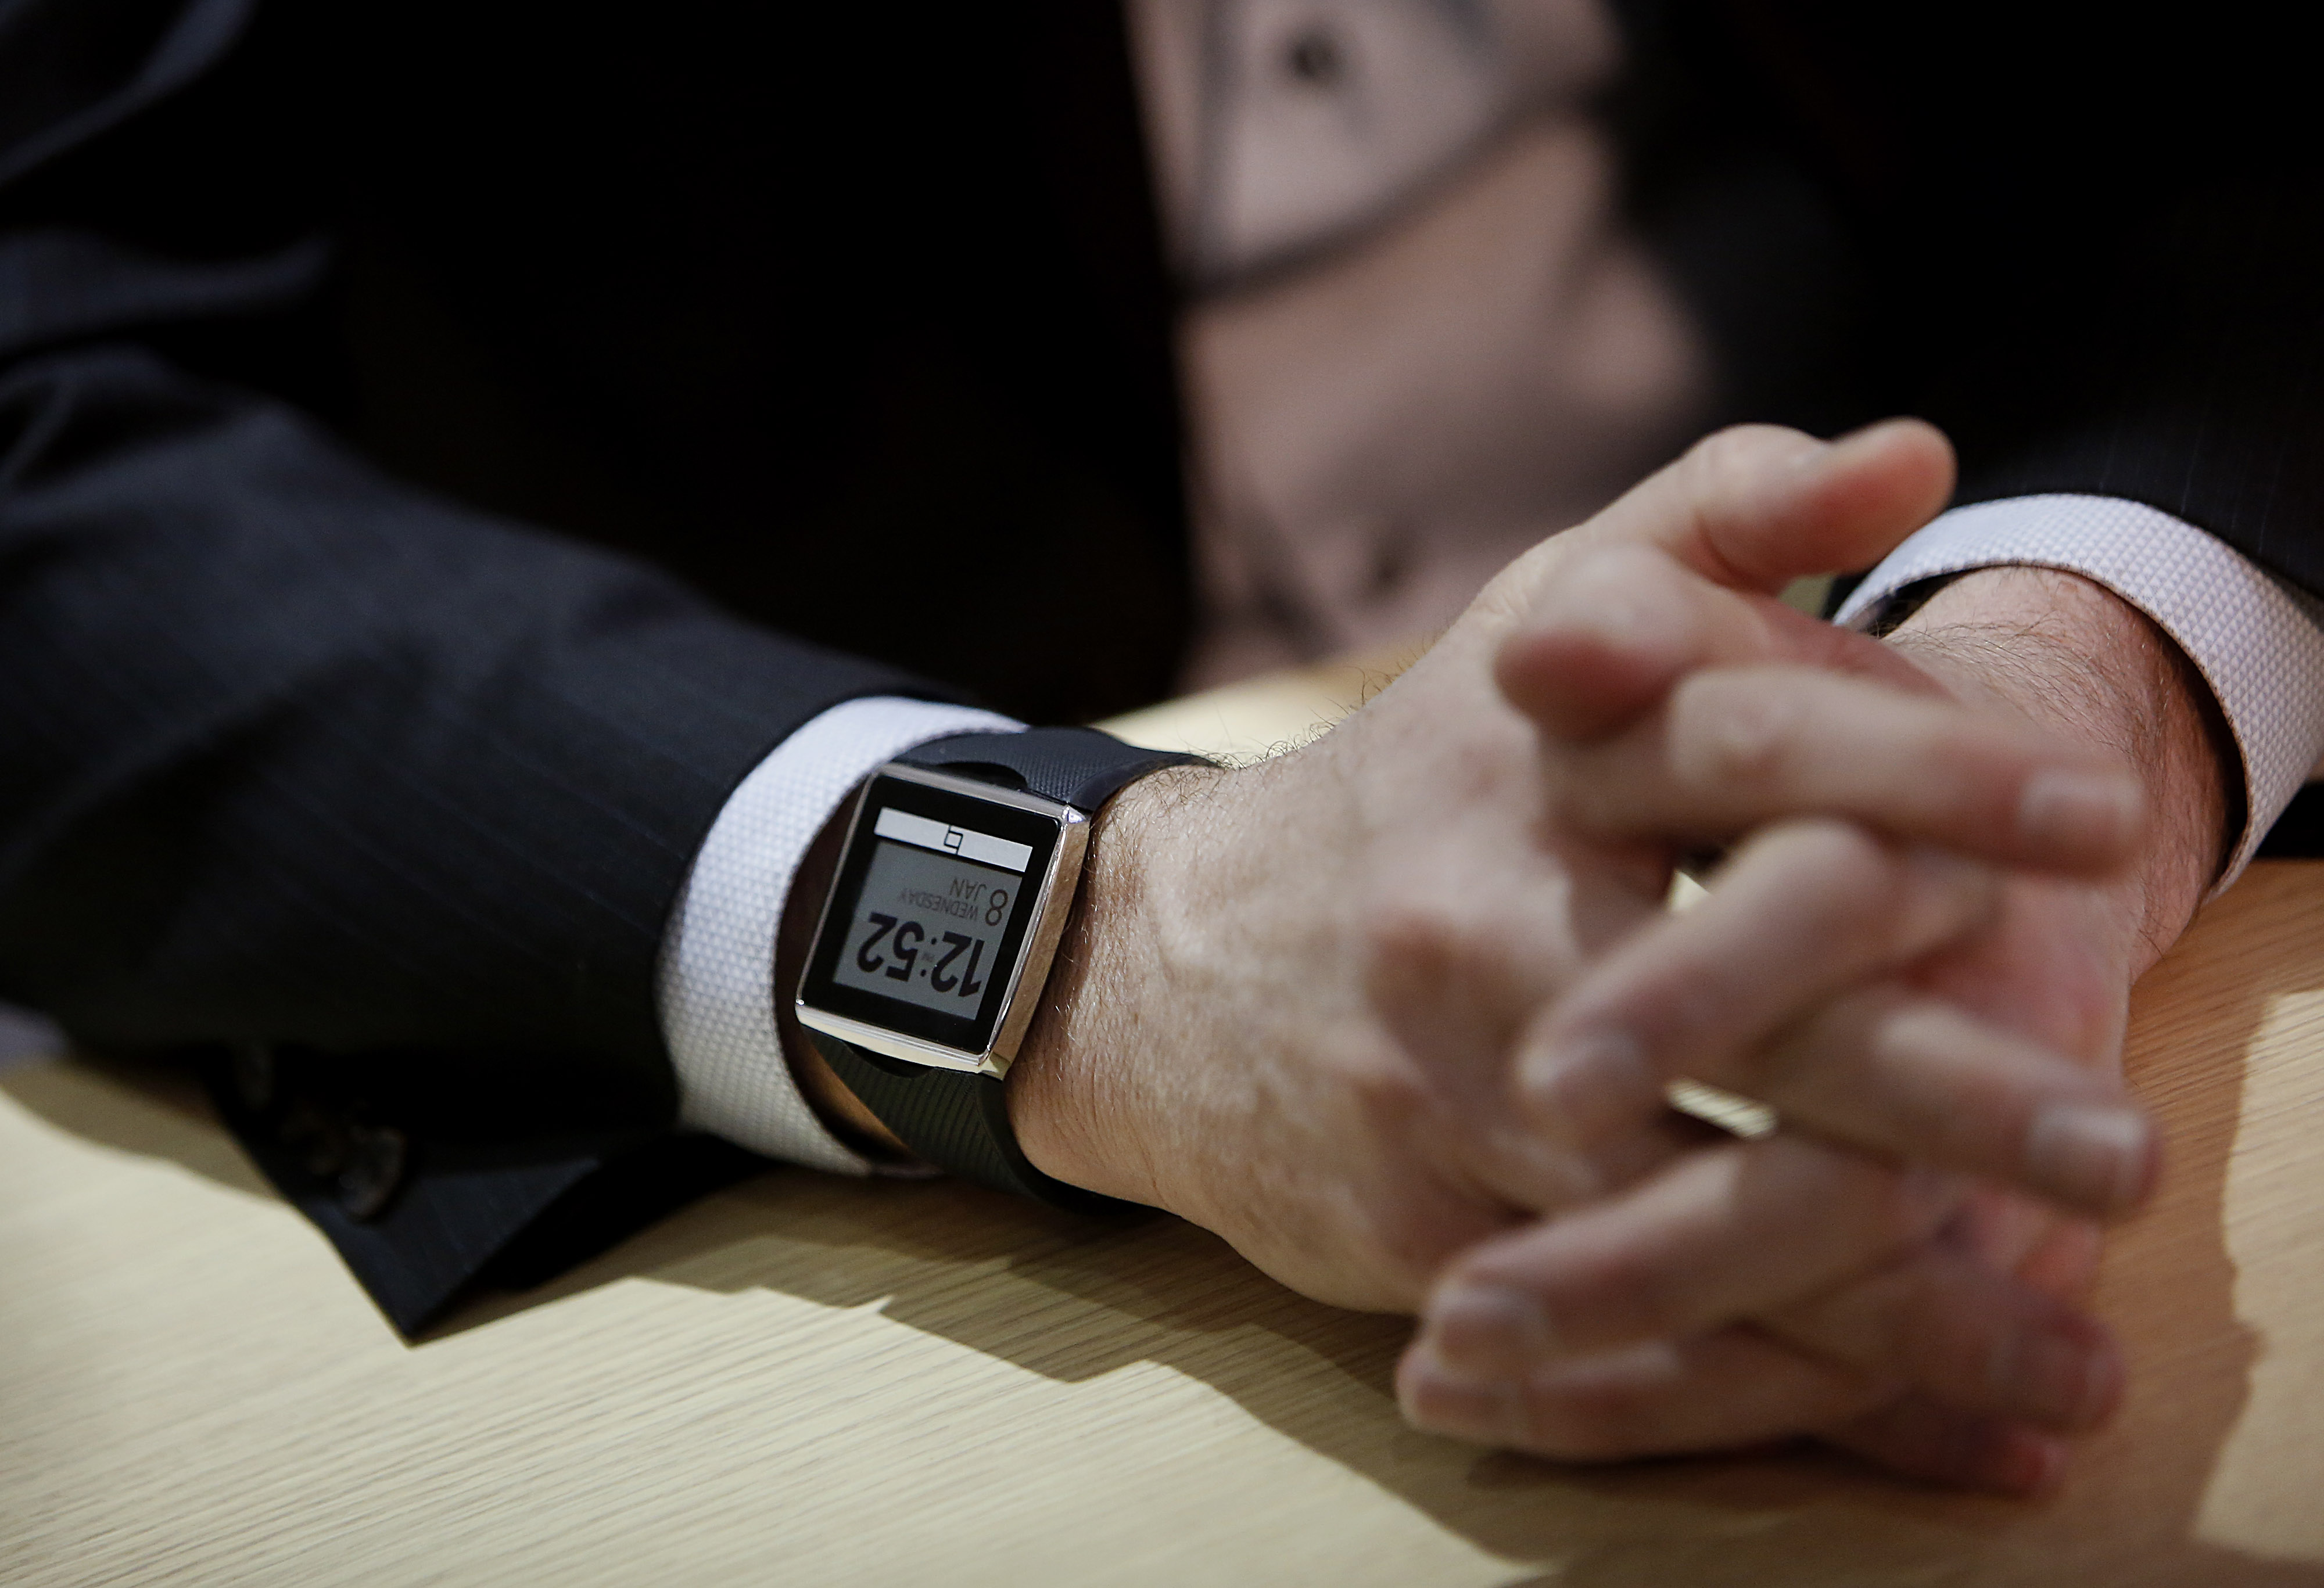 Paul Jacobs, chairman and chief executive officer of Qualcomm Inc., wears a Toq smartwatch while speaking during a Bloomberg Television interview.